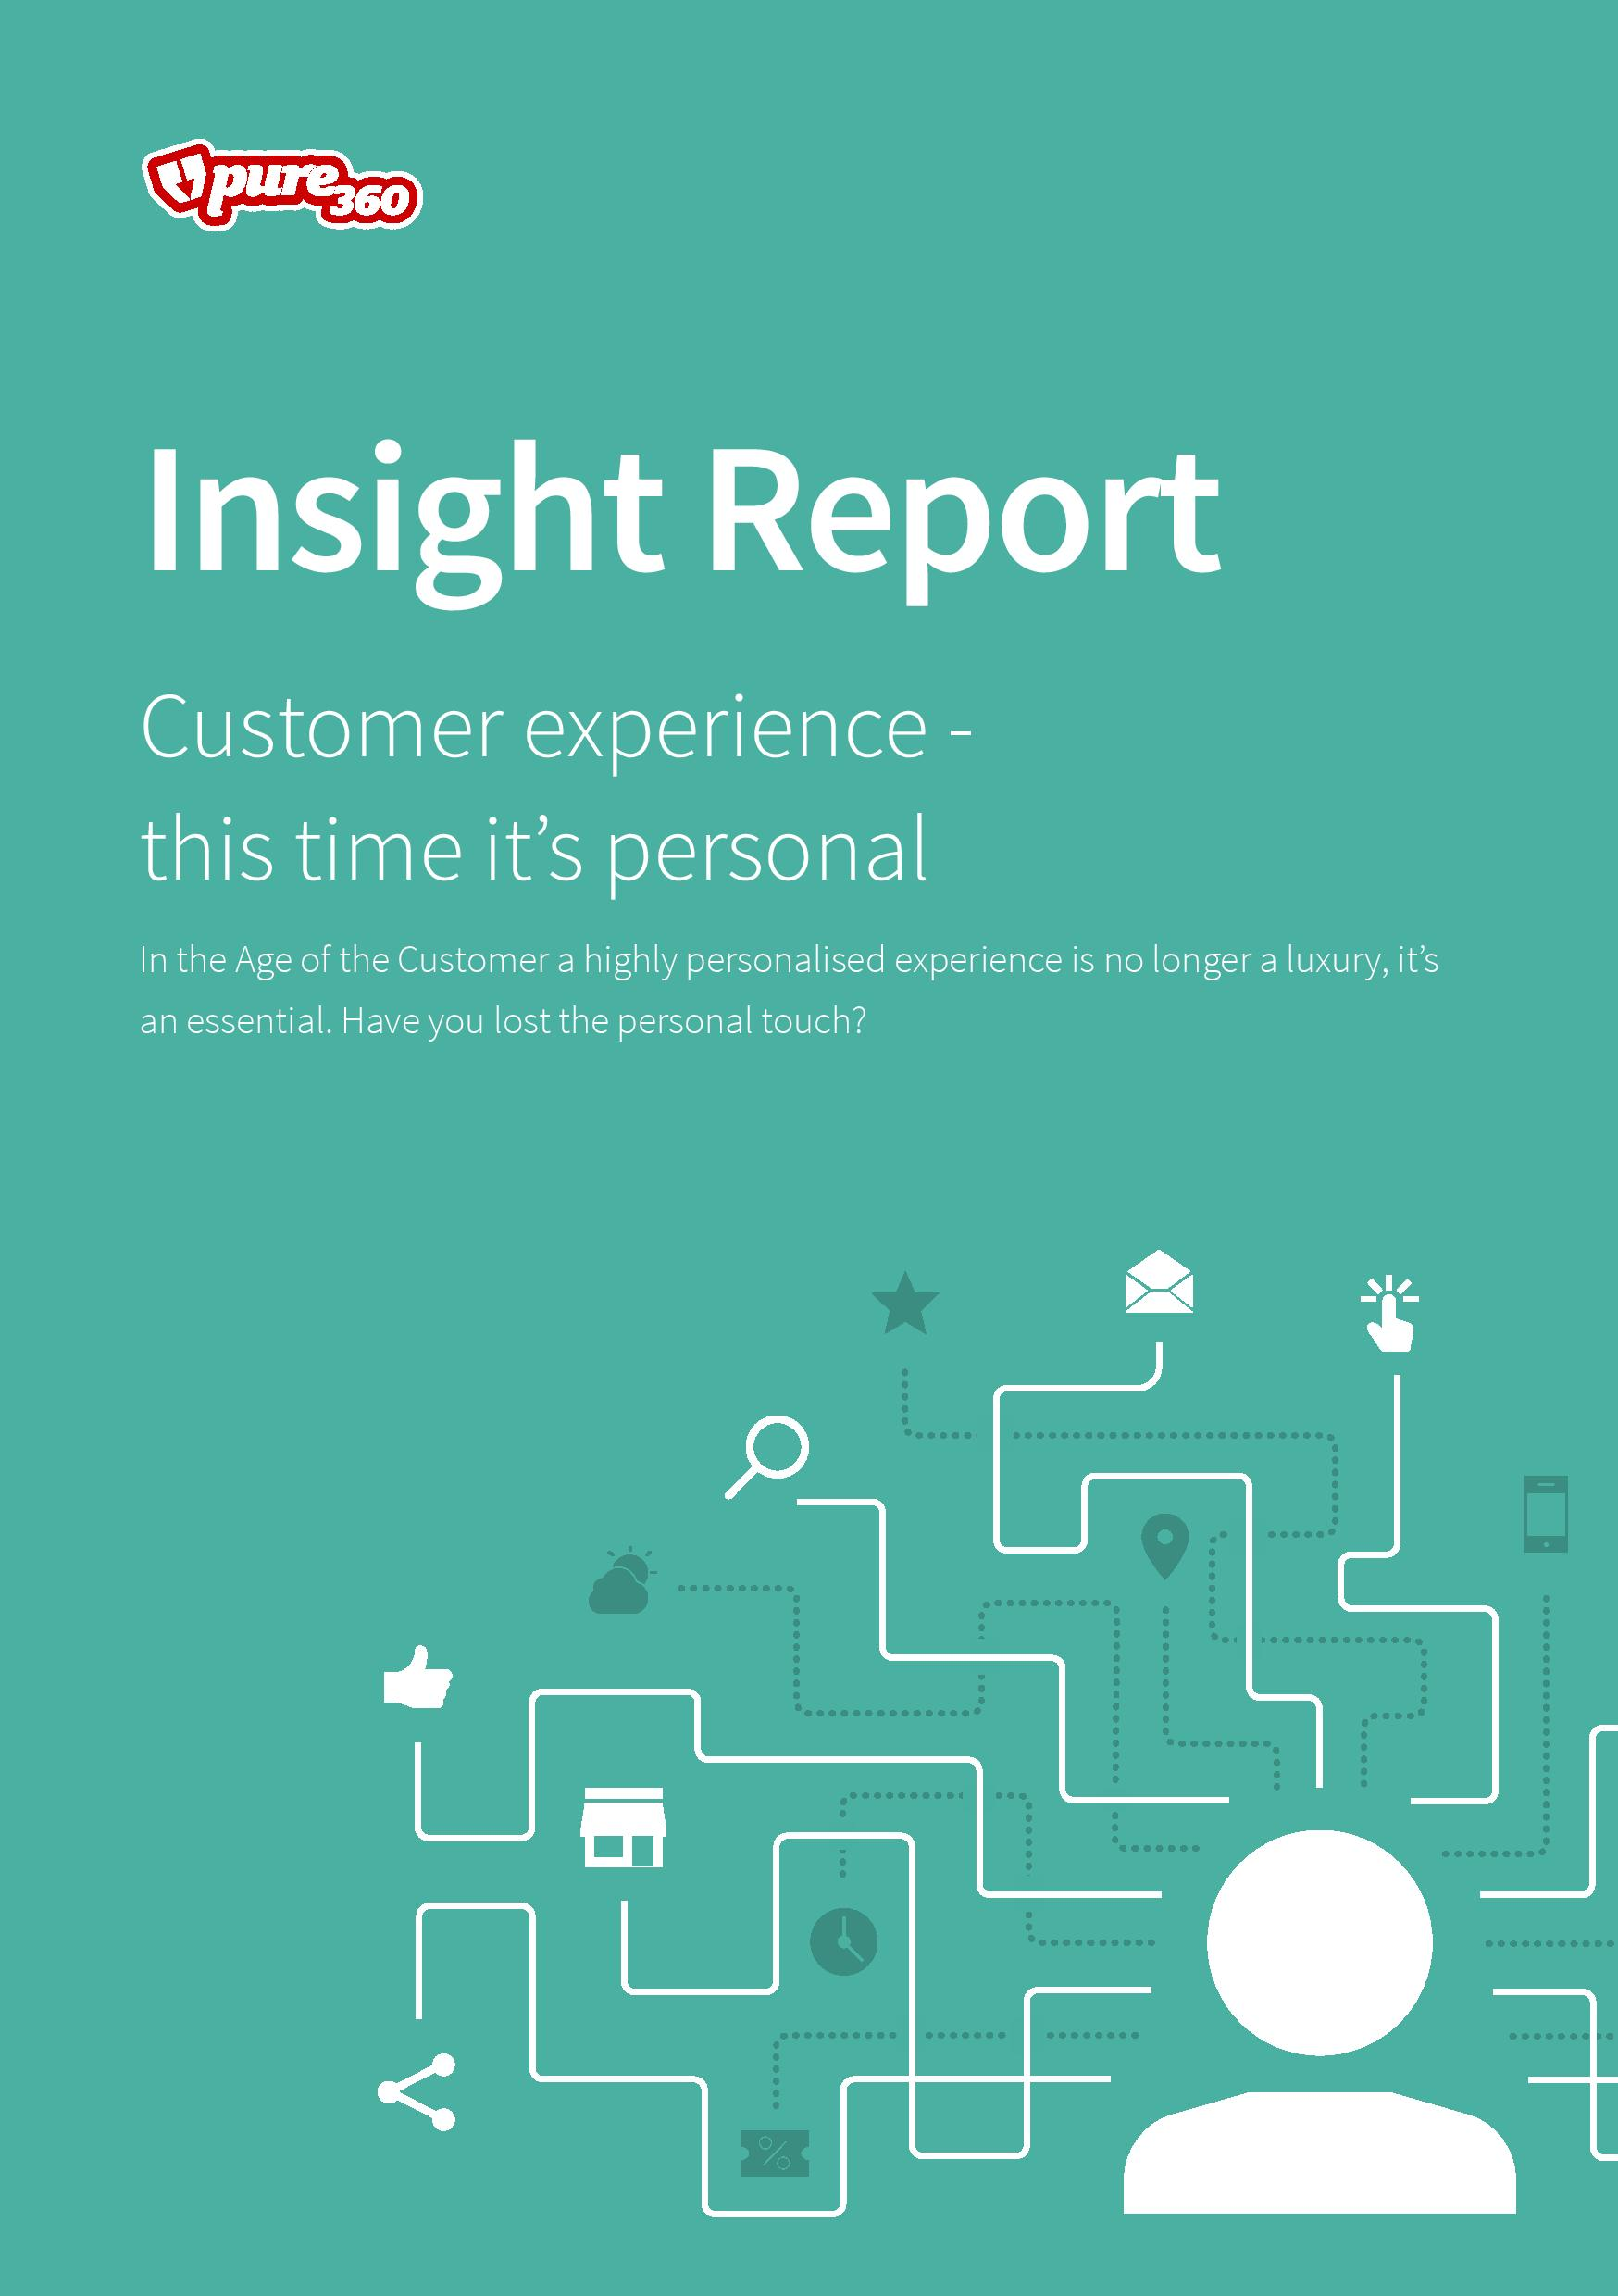 Pure360 Insight Report - Customer Experience - This Time It's Personal